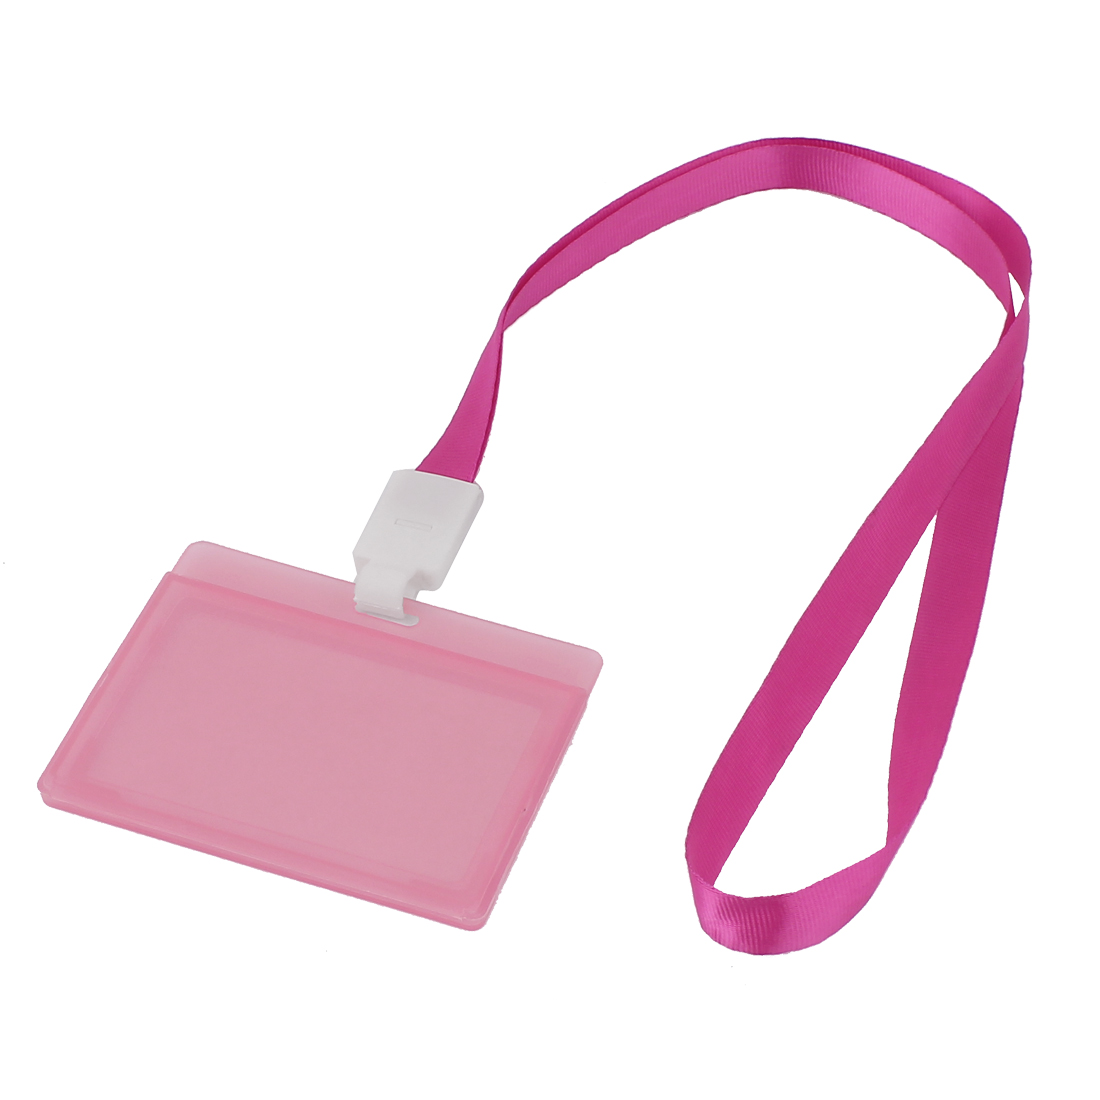 Plastic Hanging Name Credit ID Card Badge Holder Case Protector Cover